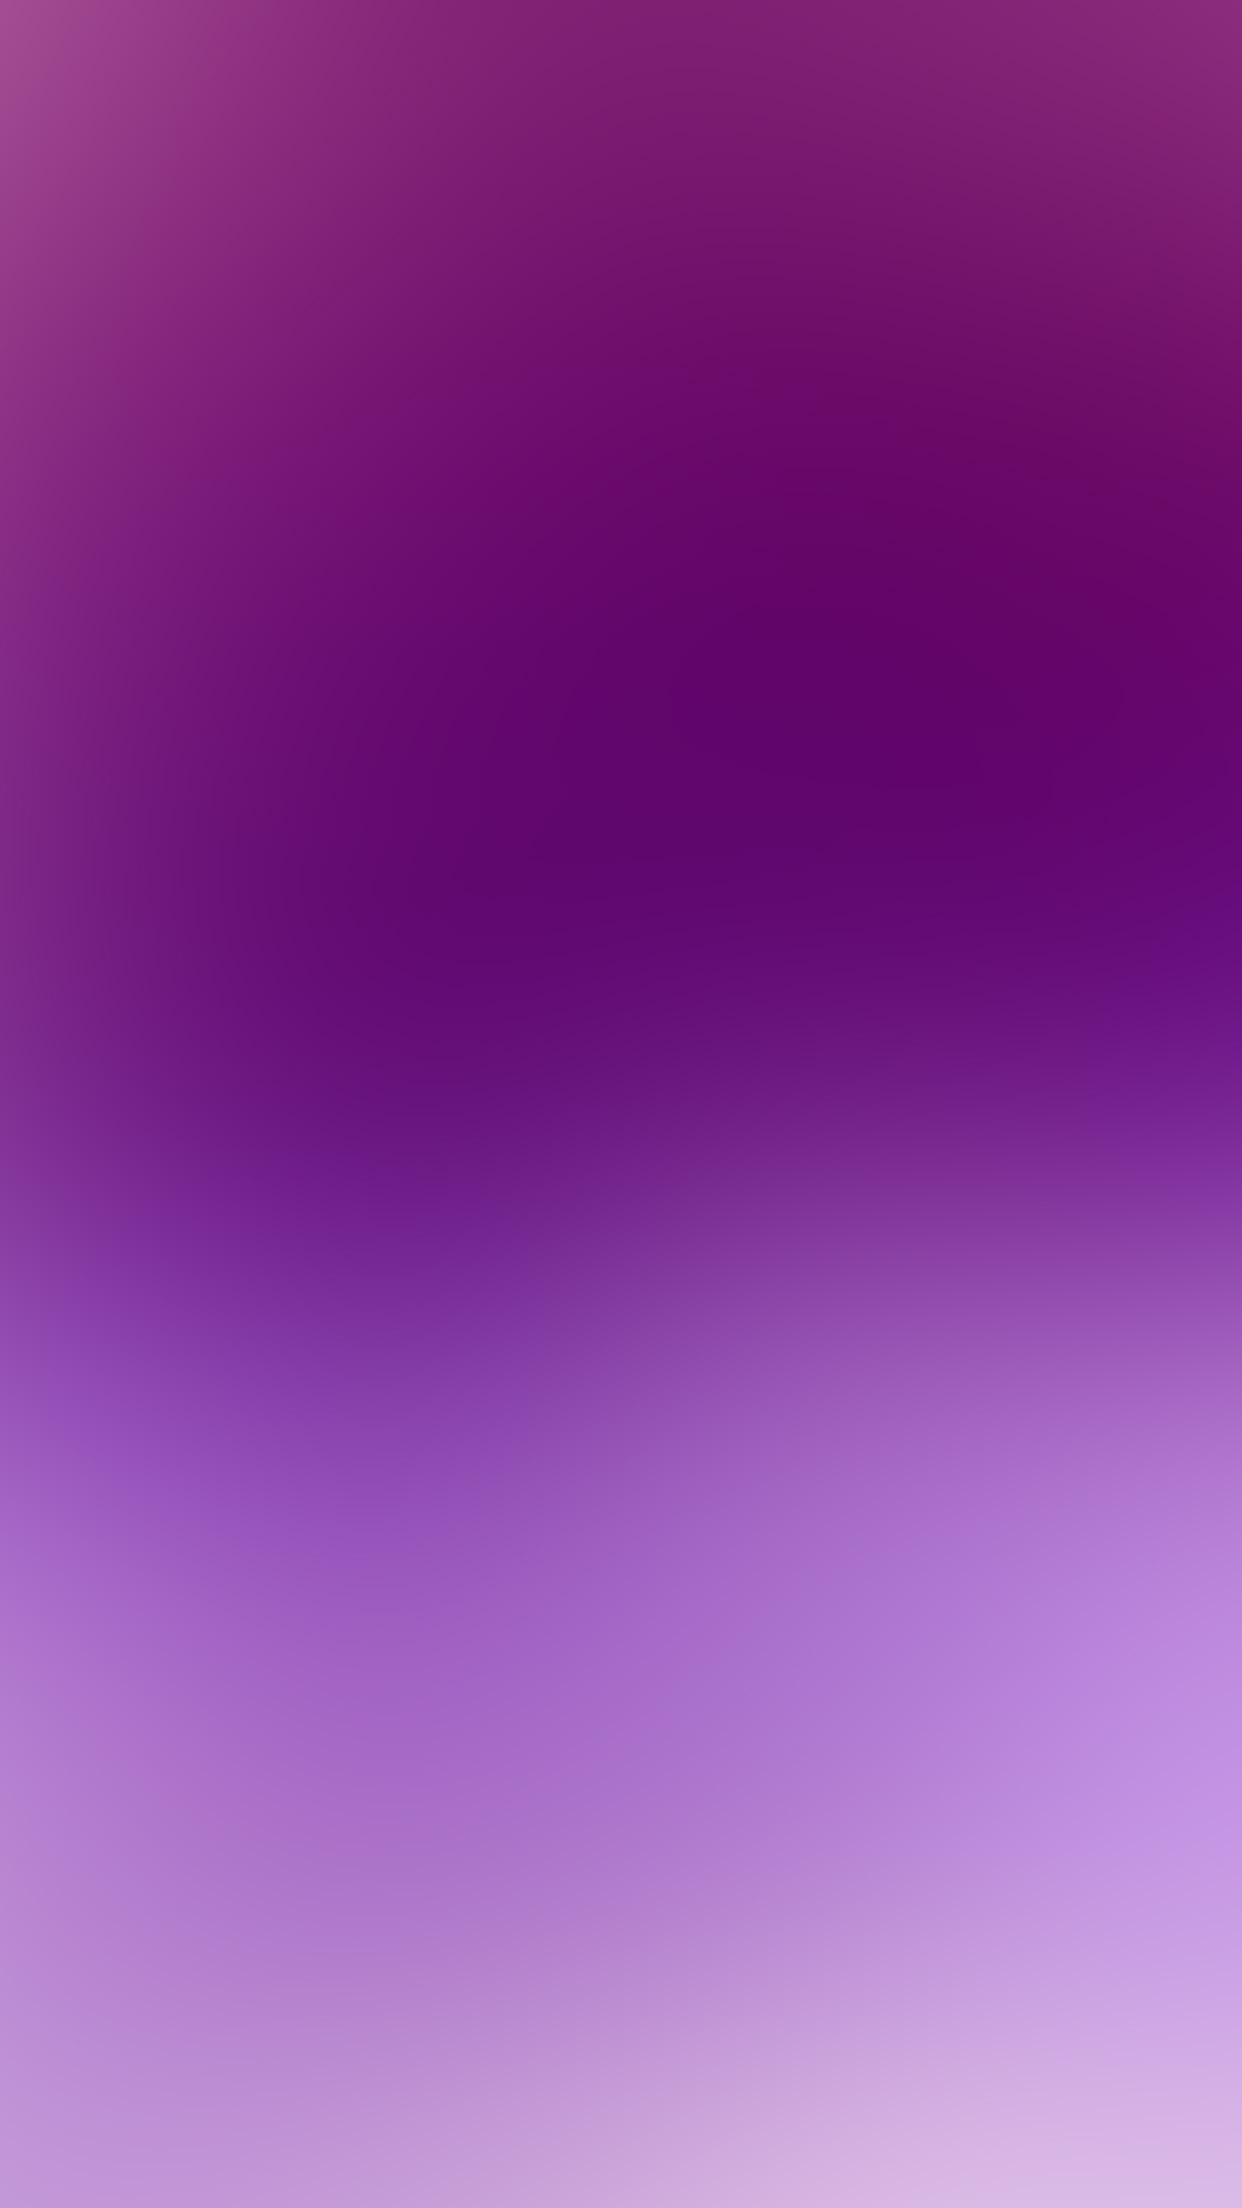 sf29-purple-rain-gradation-blur - Papers.co